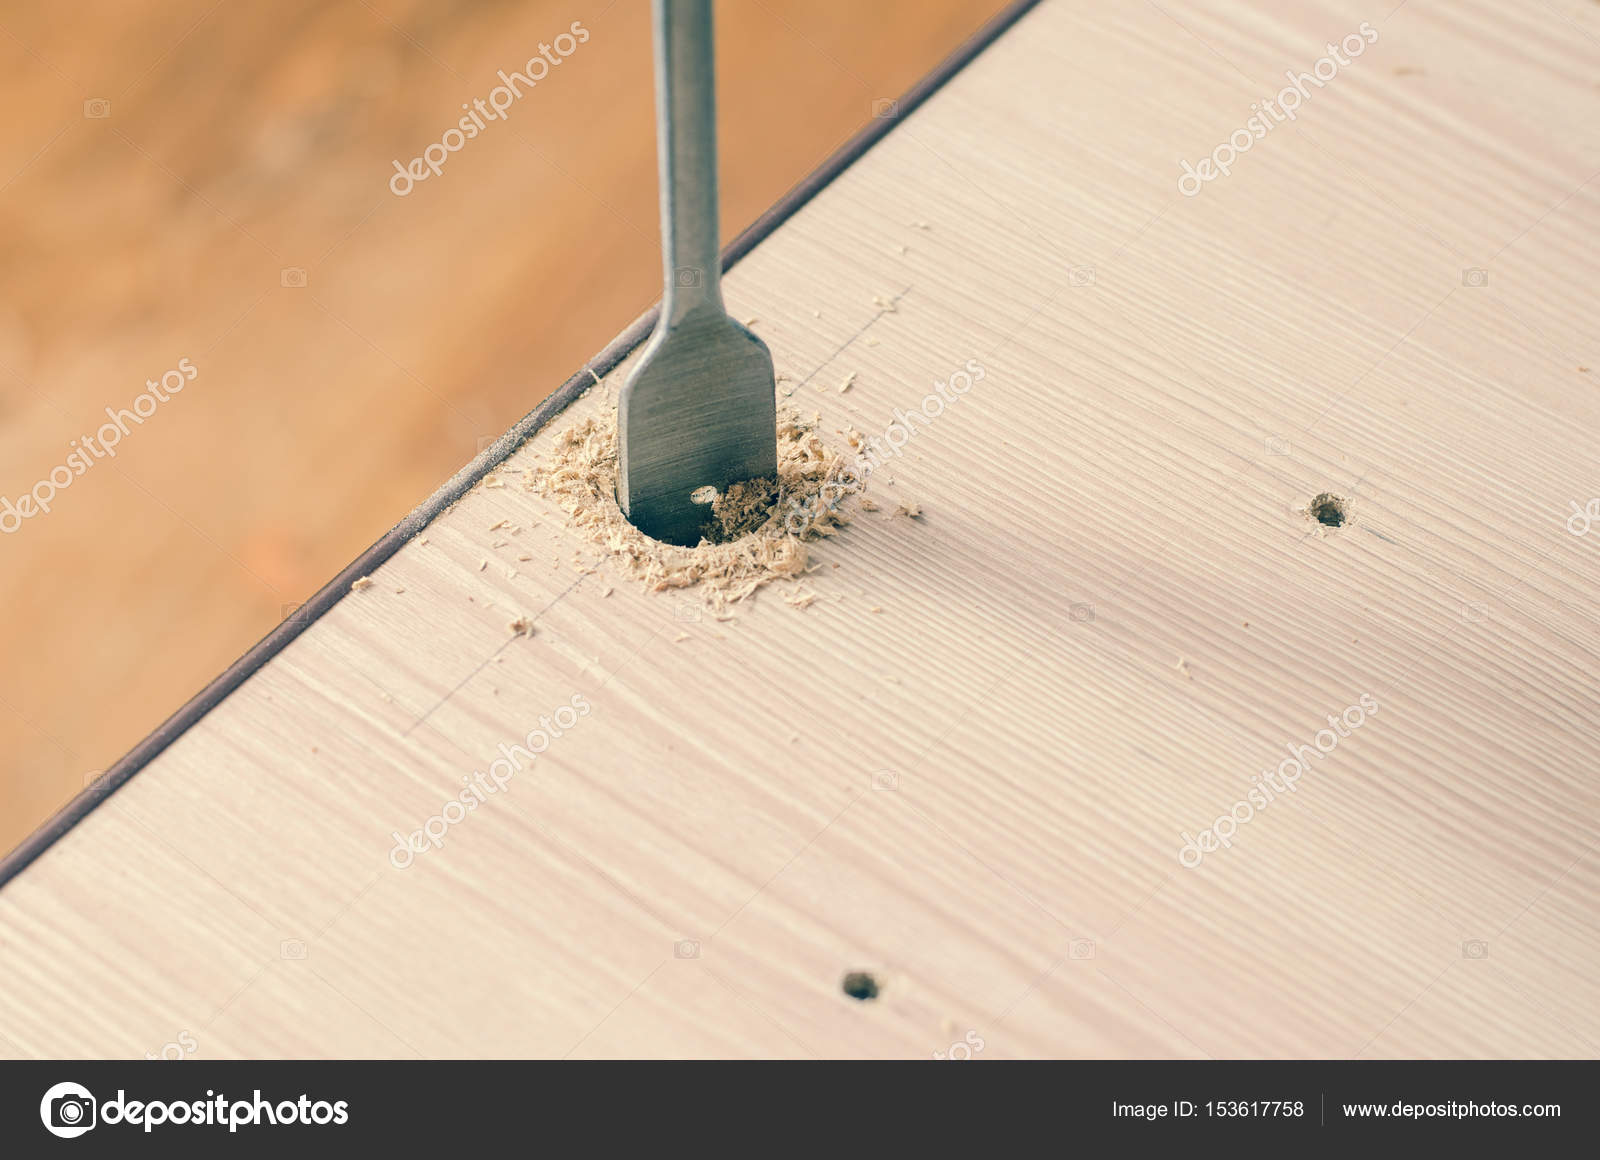 Drilling Holes In A Wooden Block Stock Photo C Andrei310 153617758